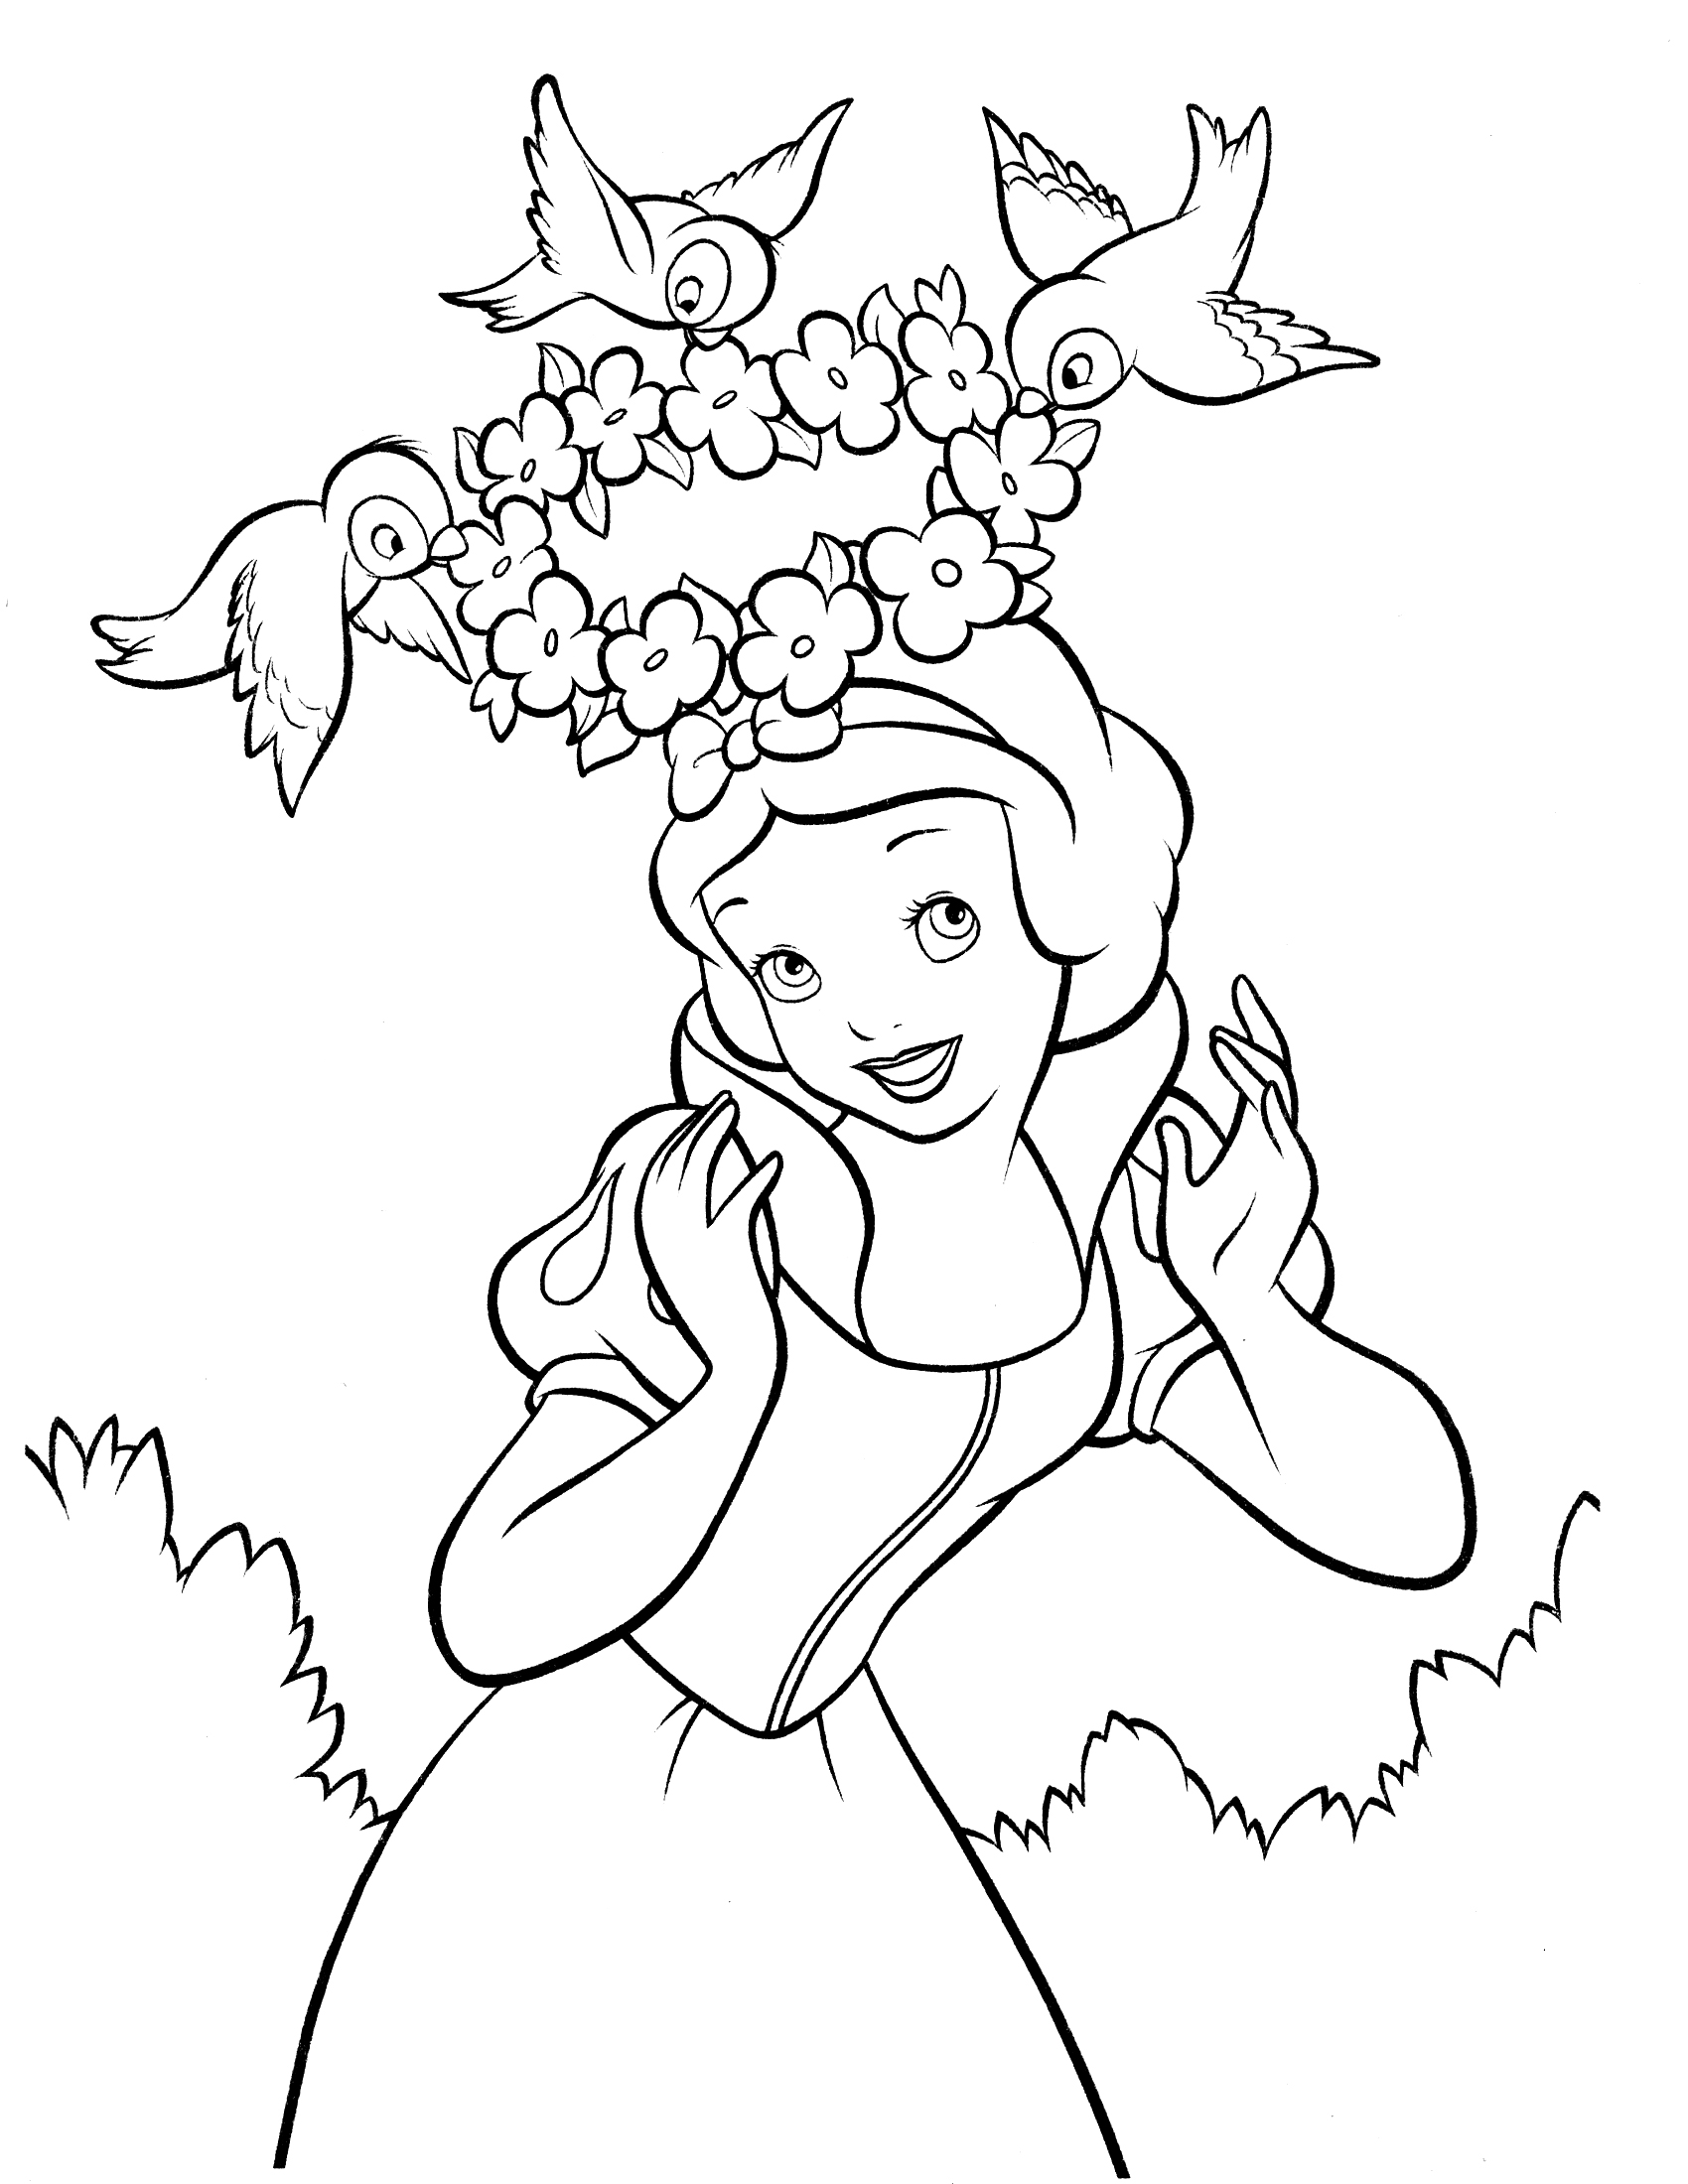 snowwhite coloring snow white to color for children snow white kids snowwhite coloring